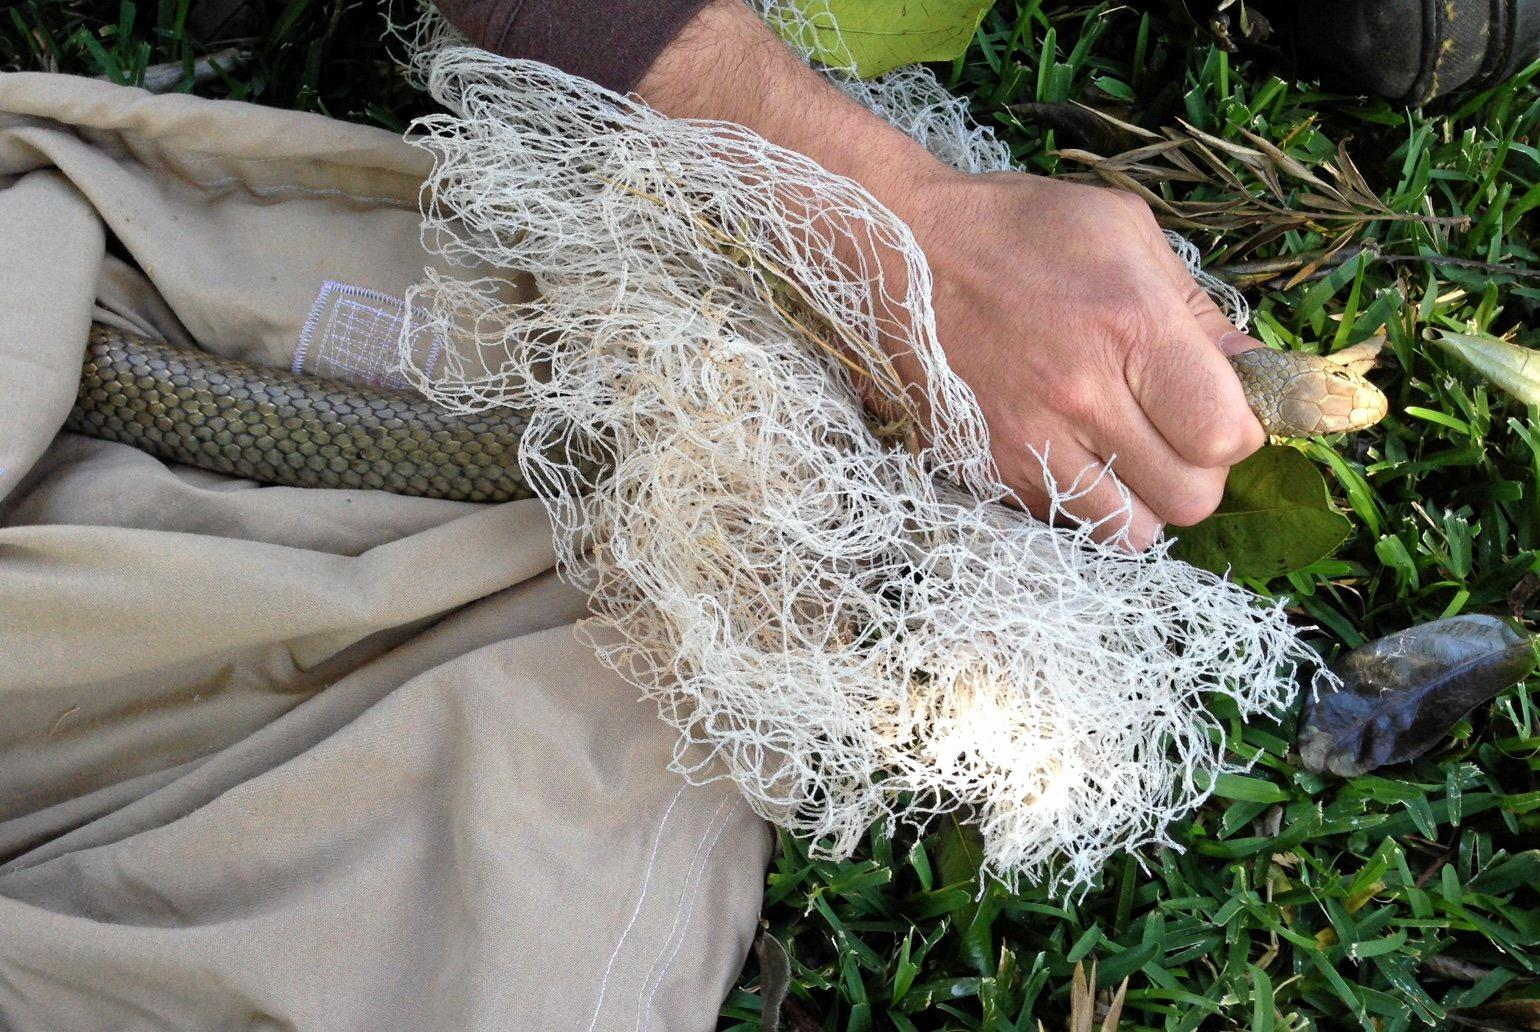 An Eastern Brown snake became entangled in this garden mesh netting and needed rescuing. Photo: Lib Ruytenberg